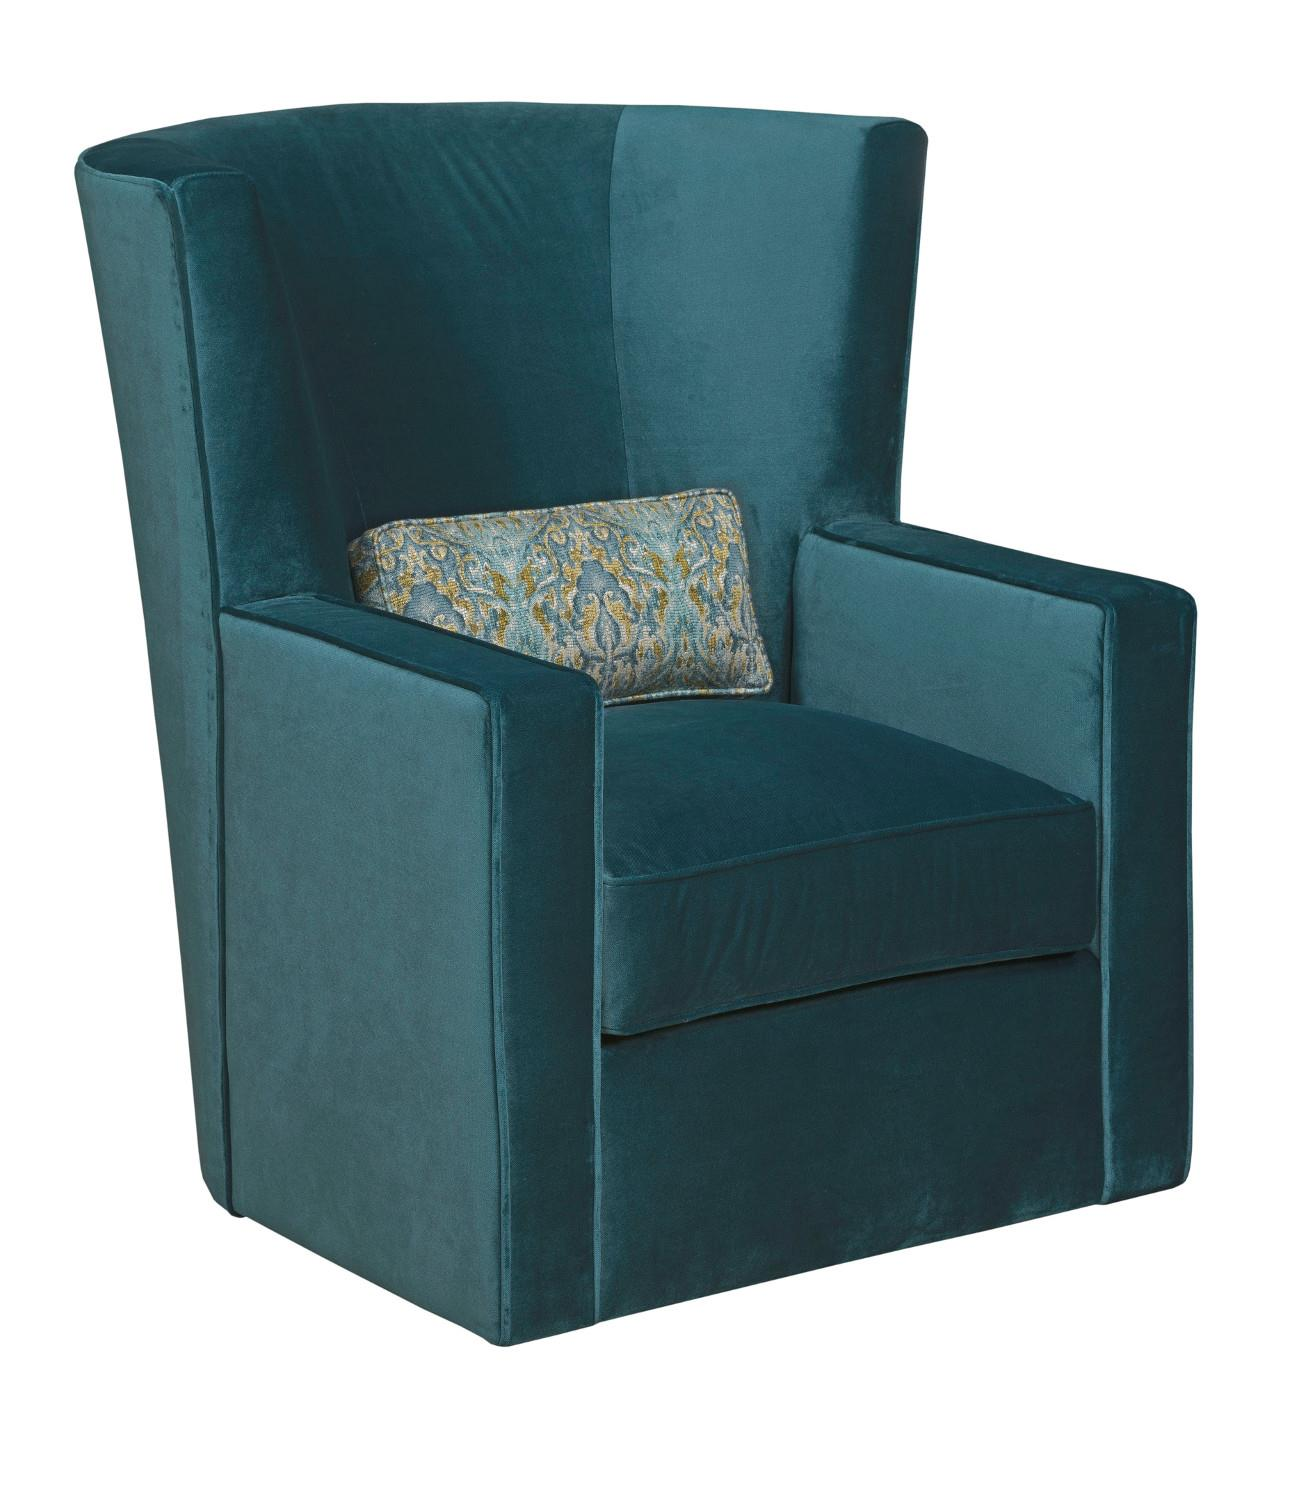 Accent Chairs Fitzgerald Swivel Chair by Kincaid Furniture at Johnny Janosik